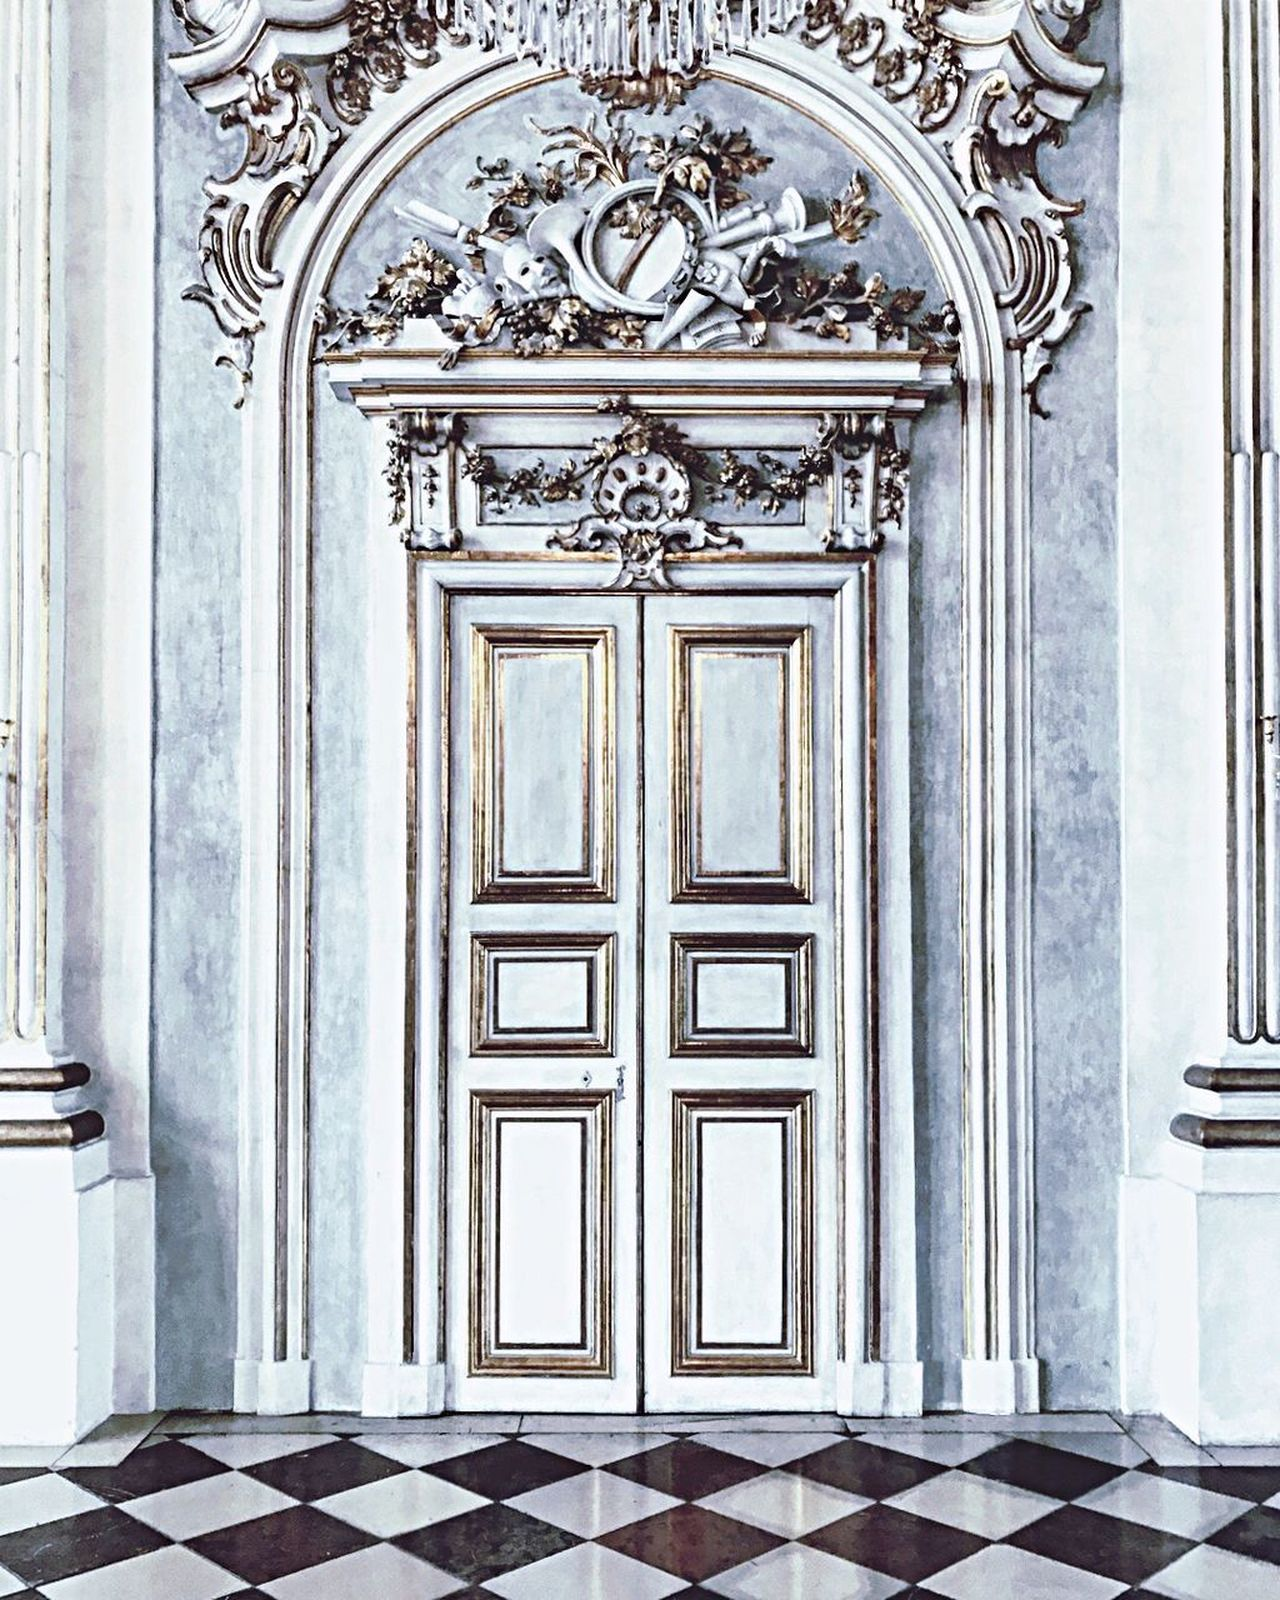 Door Closed Entrance Pattern Ornate No People Architecture Day Built Structure Outdoors Close-up Beautiful Travel Enjoying Life Photography Hello World EyeEmNewHere Taking Photos Munich